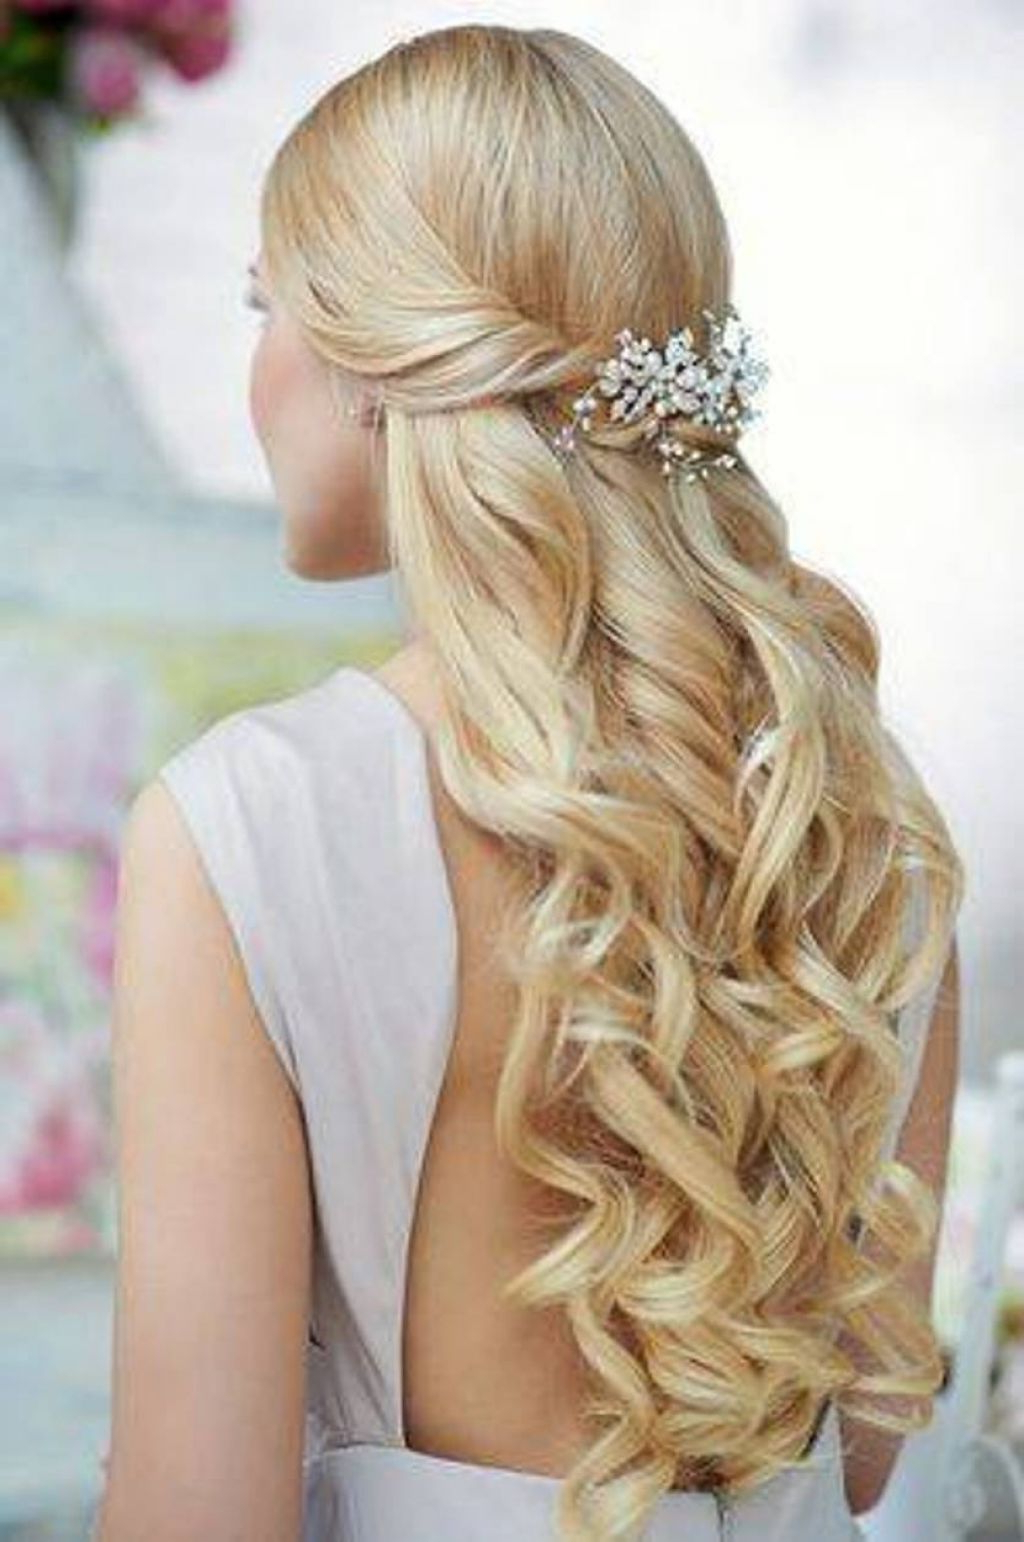 Fashionable Half Up Curls Hairstyles For Wedding For √ 24+ Awesome Wedding Hairstyles Half Up Half Down: Curly (View 9 of 20)